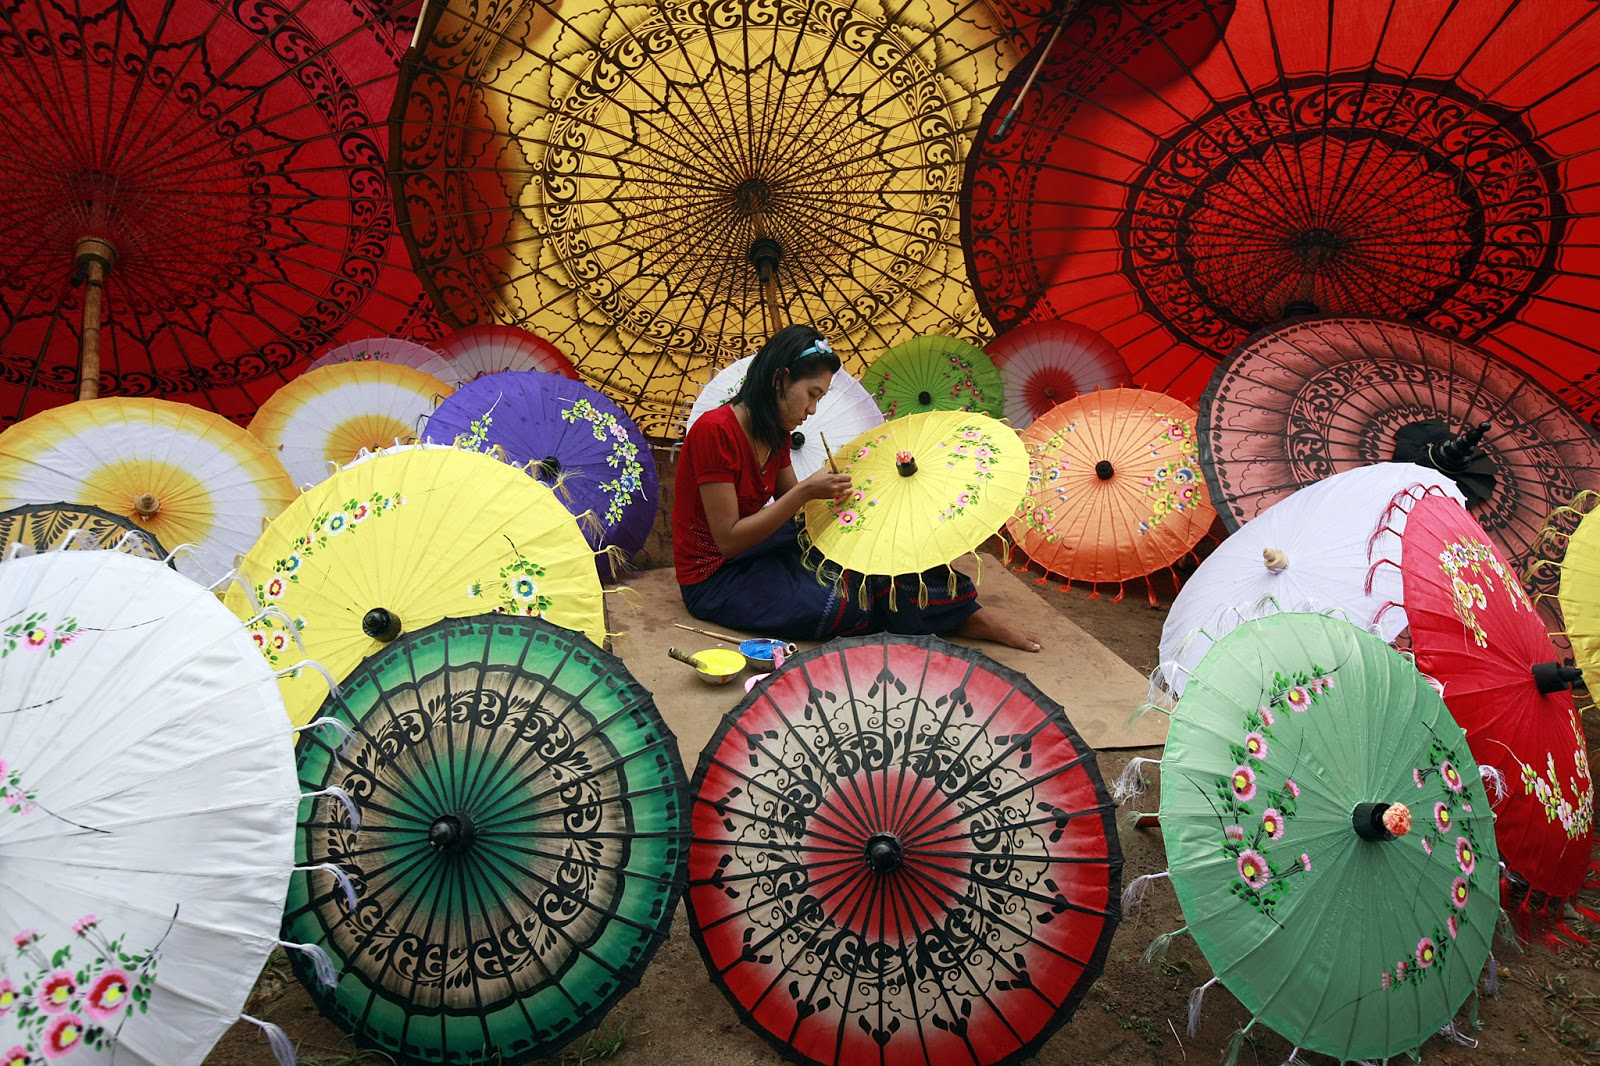 Some traditional umbrellas in Myanmar which you can buy as the presents